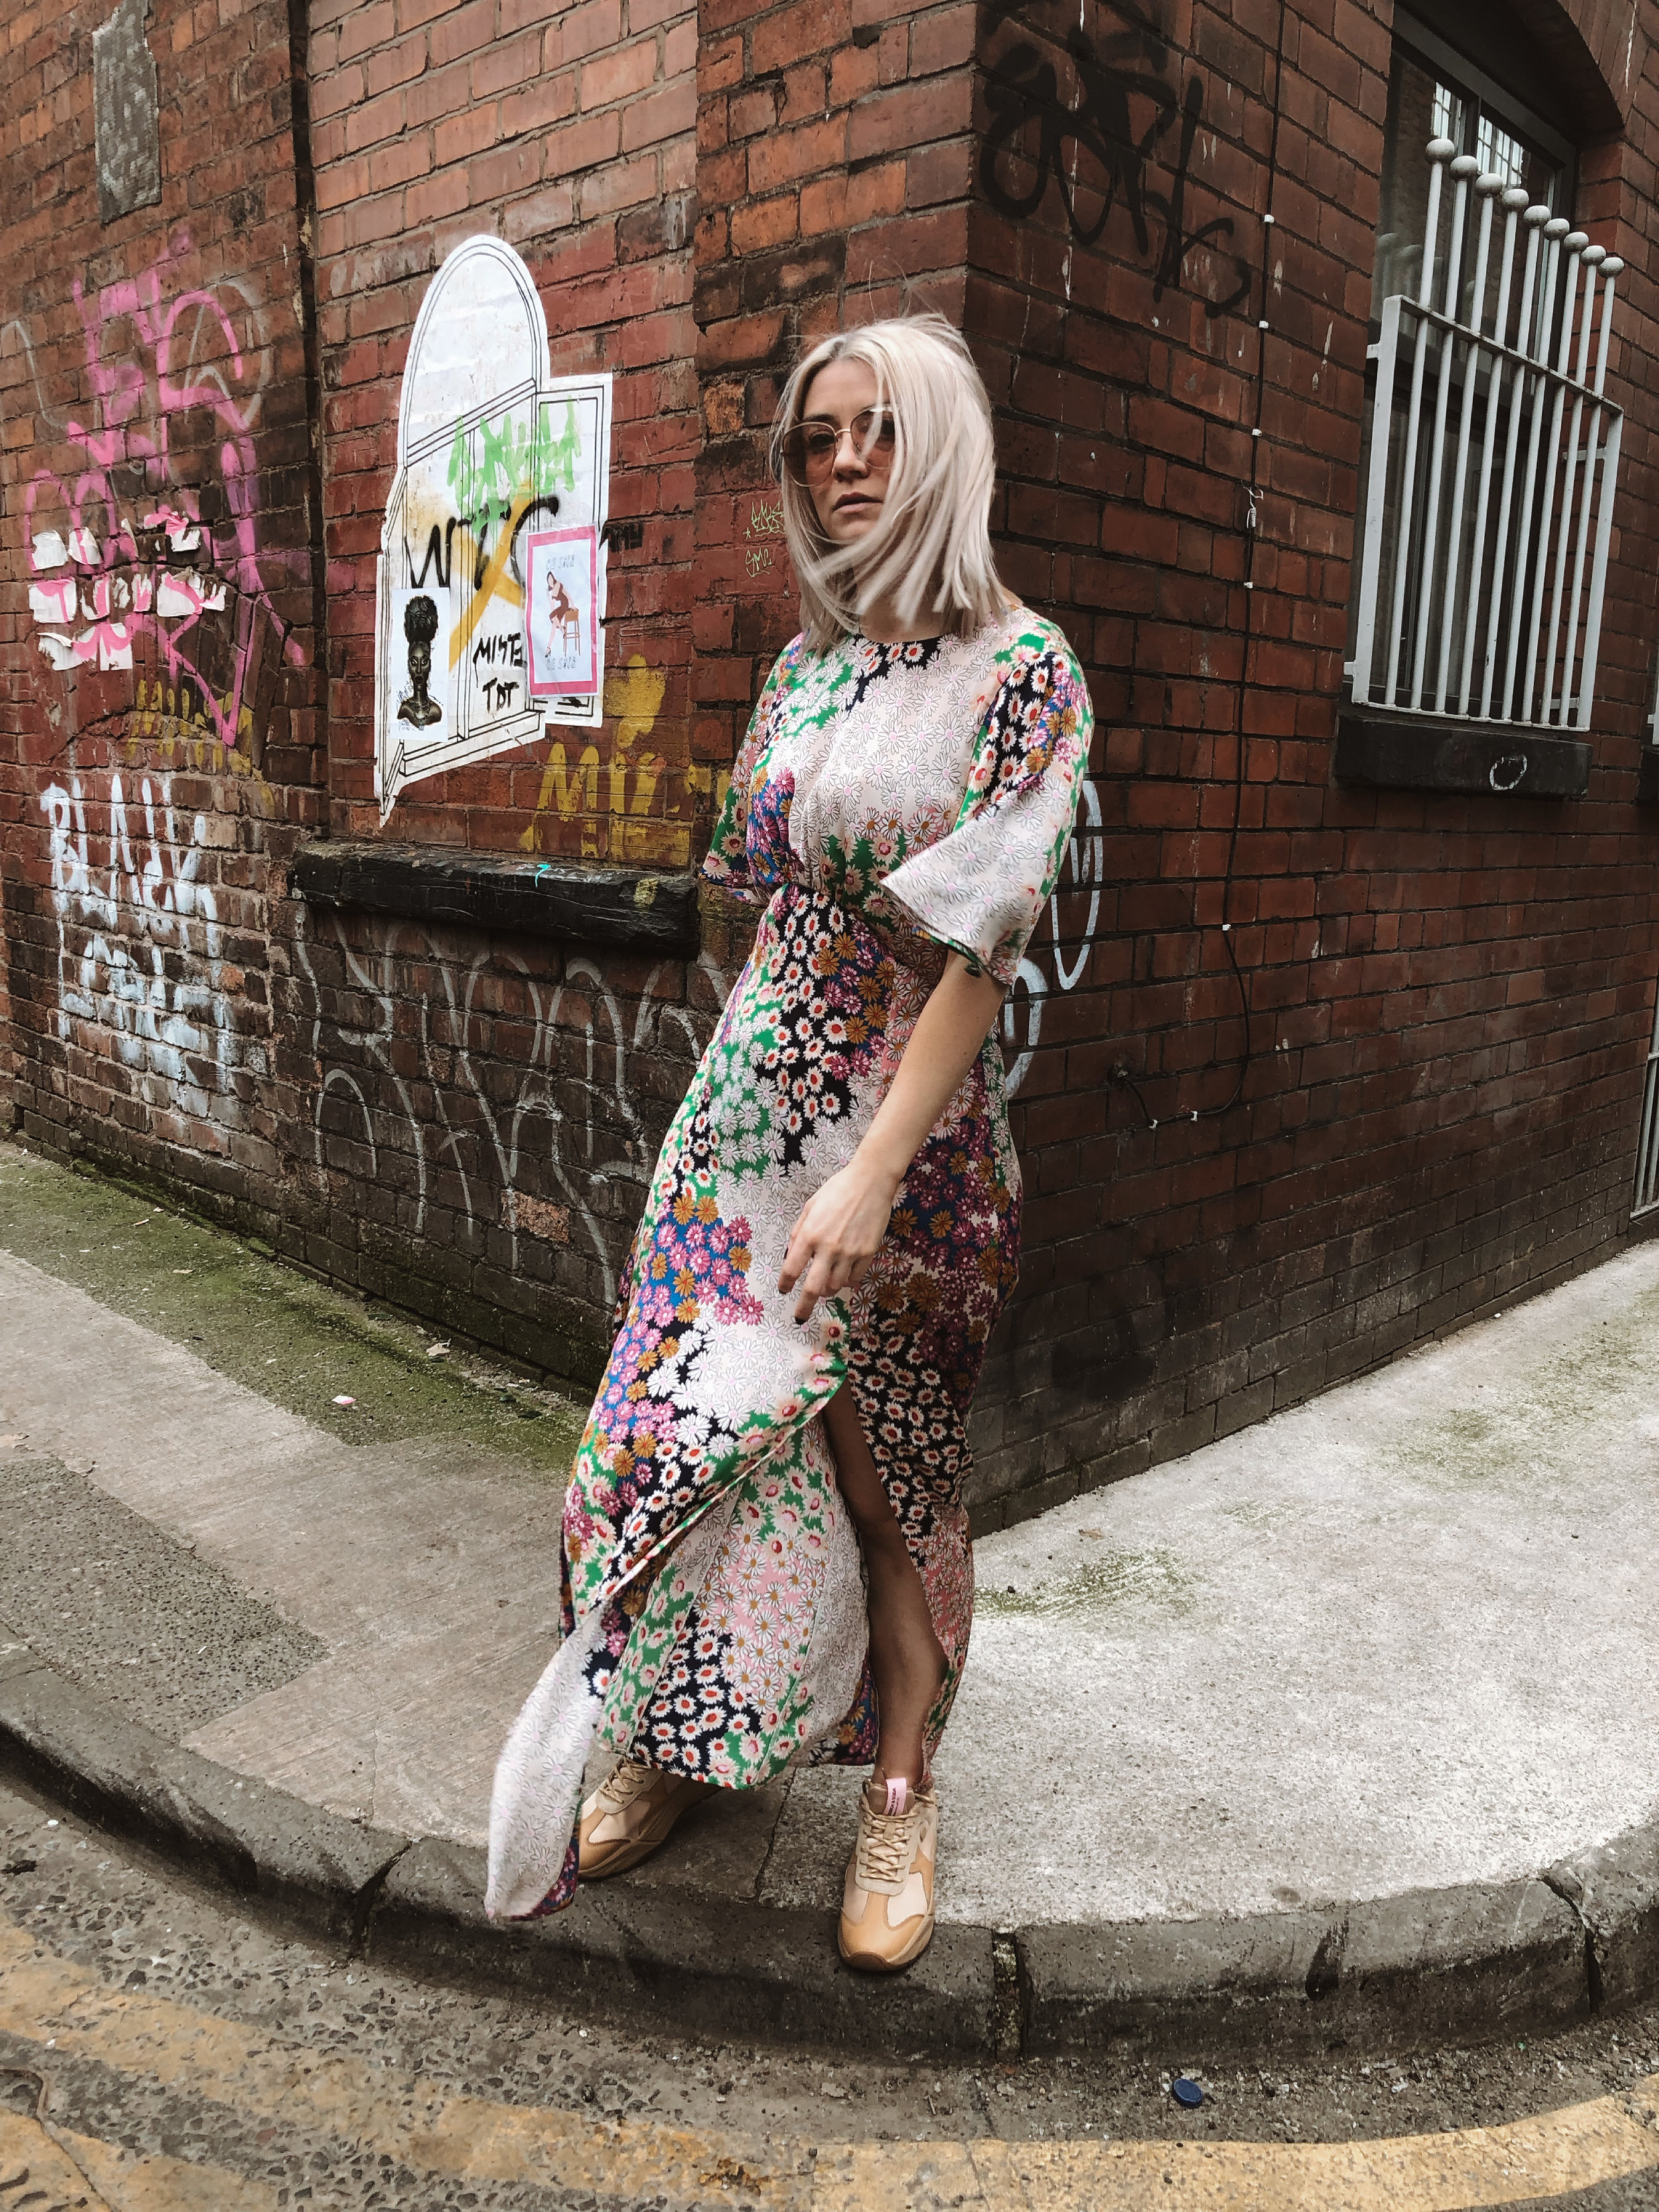 topshop auston dress, topshop floral dress, scotch and soda footwear, chunky trainers, summer dress, dresses and trainers, joey taylor, northern quarter 4